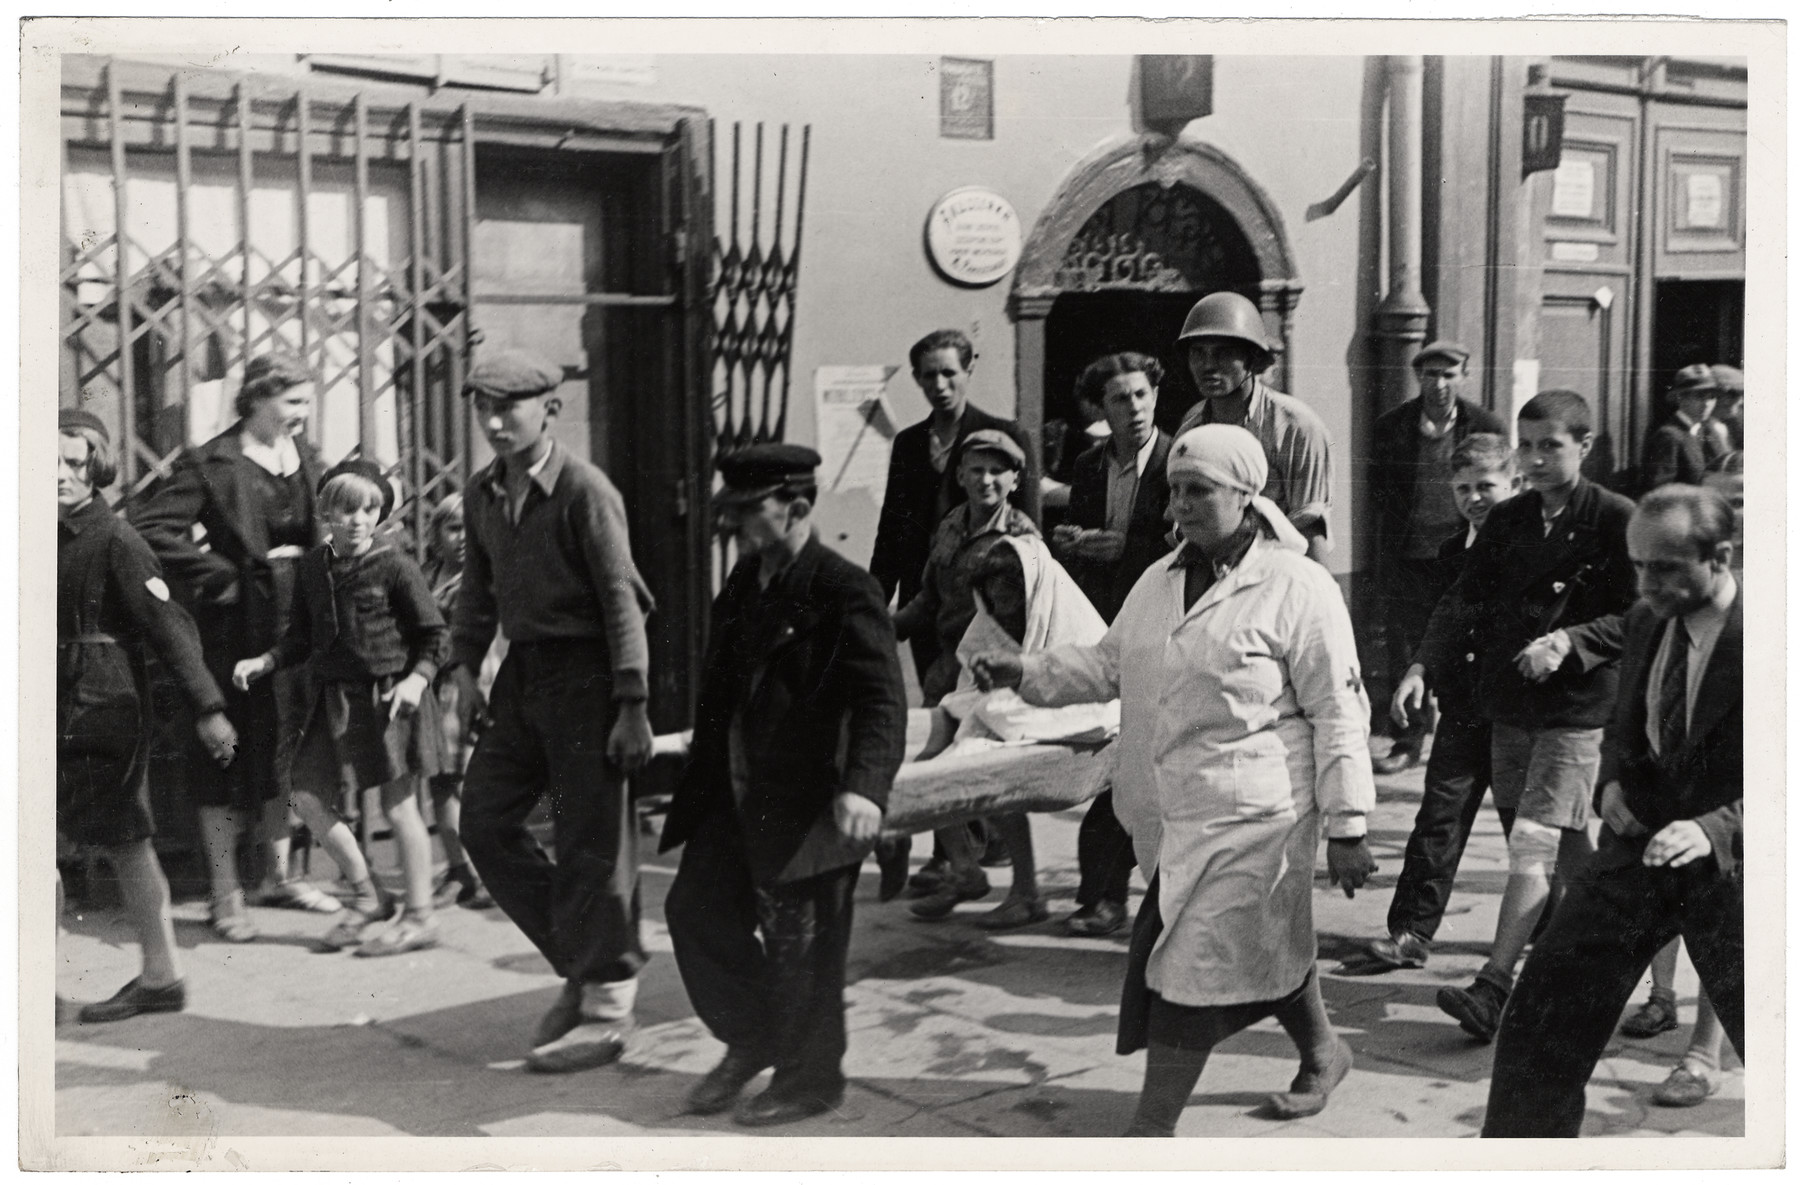 Polish civilians, soldiers, and medical personnel evacuate the wounded in besieged Warsaw.